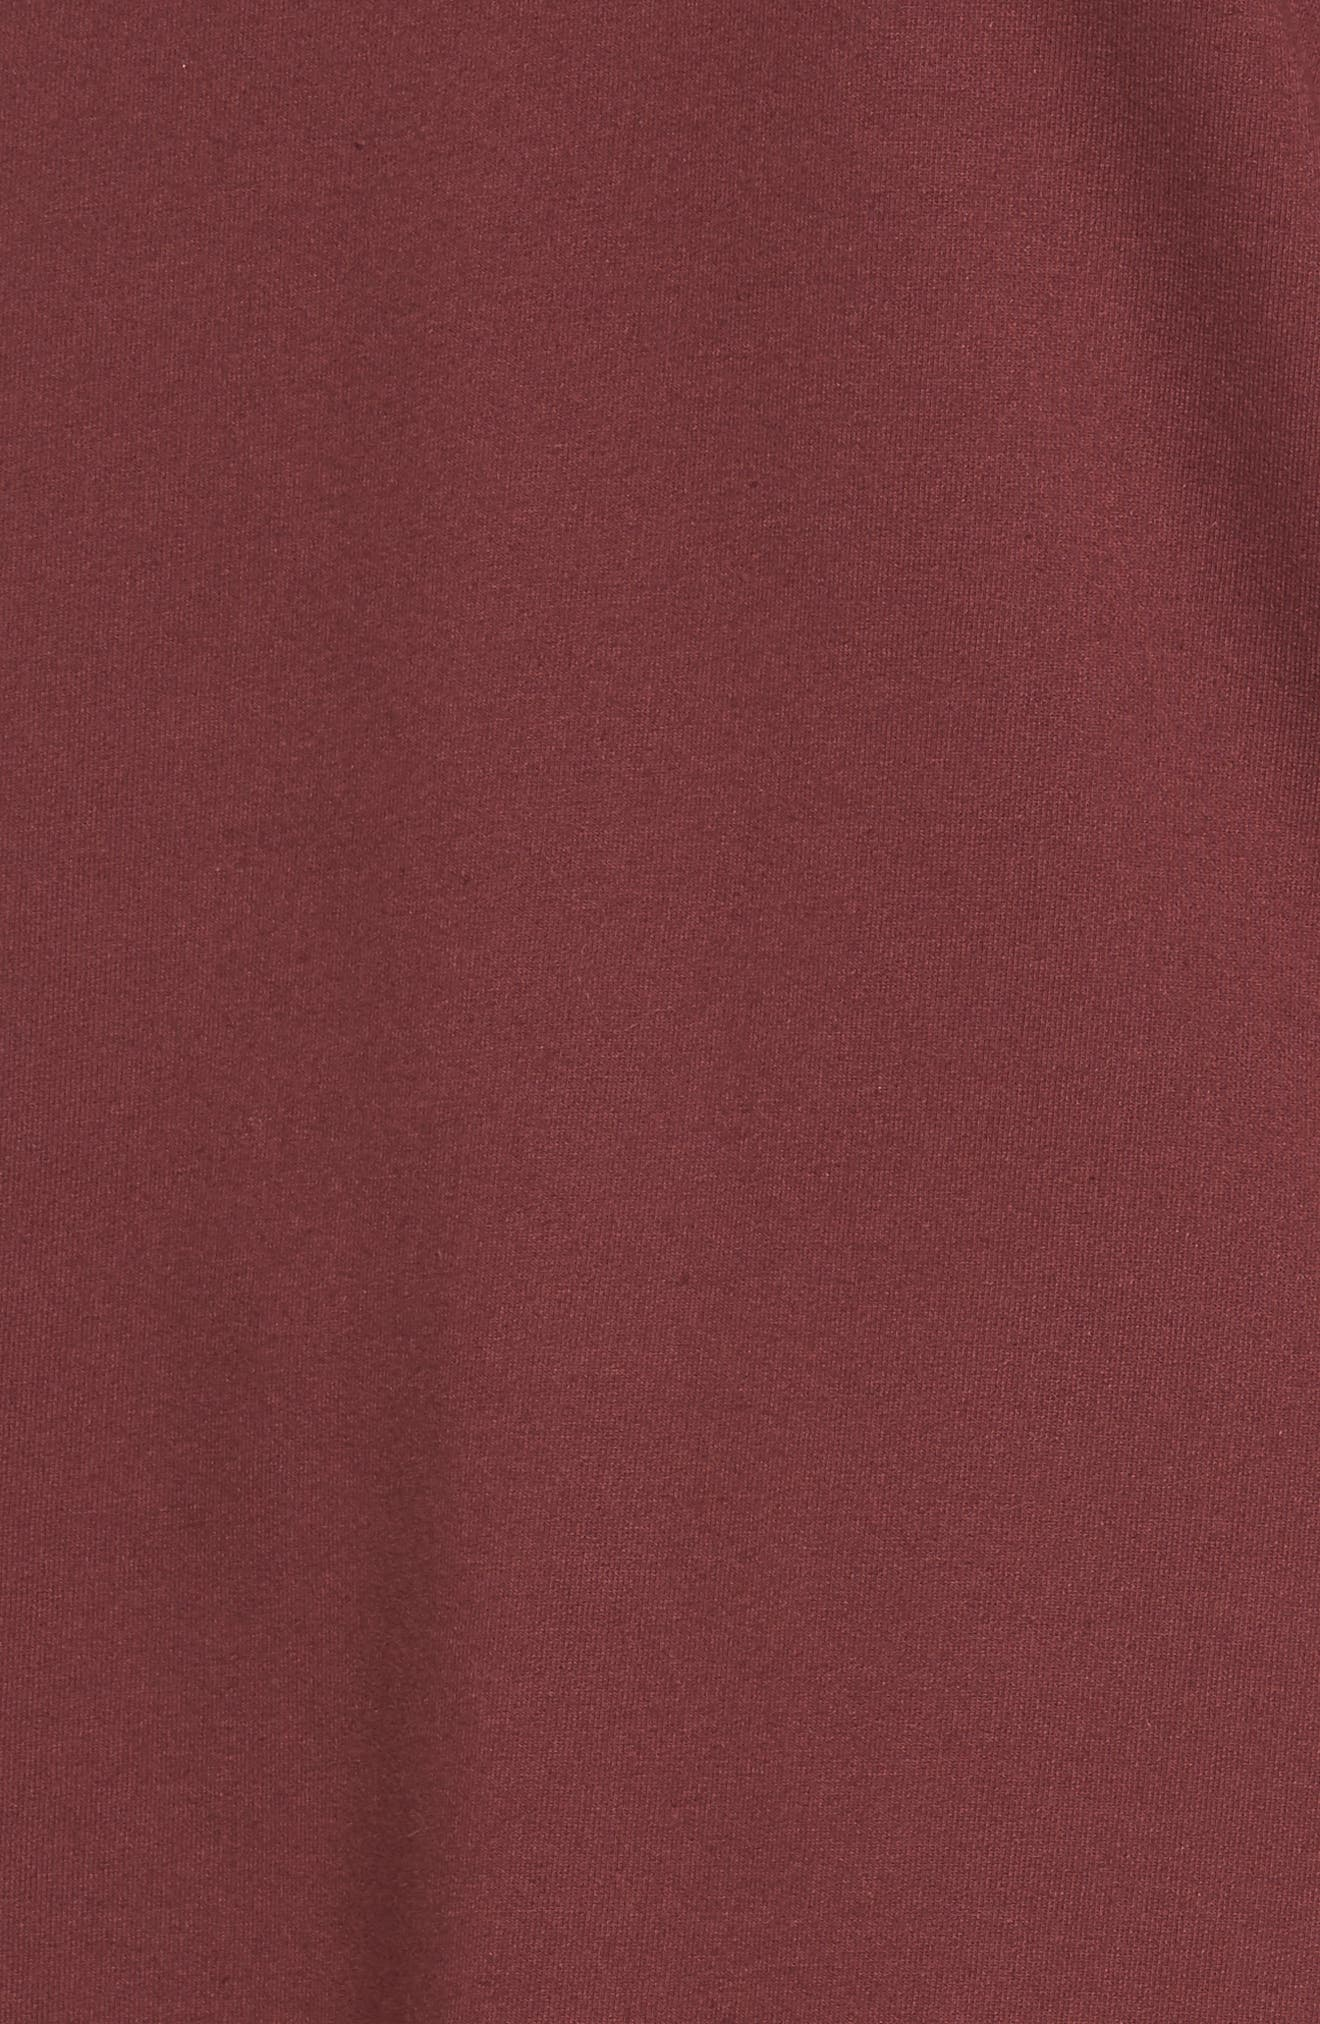 Gathered Sleeve Sweatshirt Dress,                             Alternate thumbnail 5, color,                             Burgundy